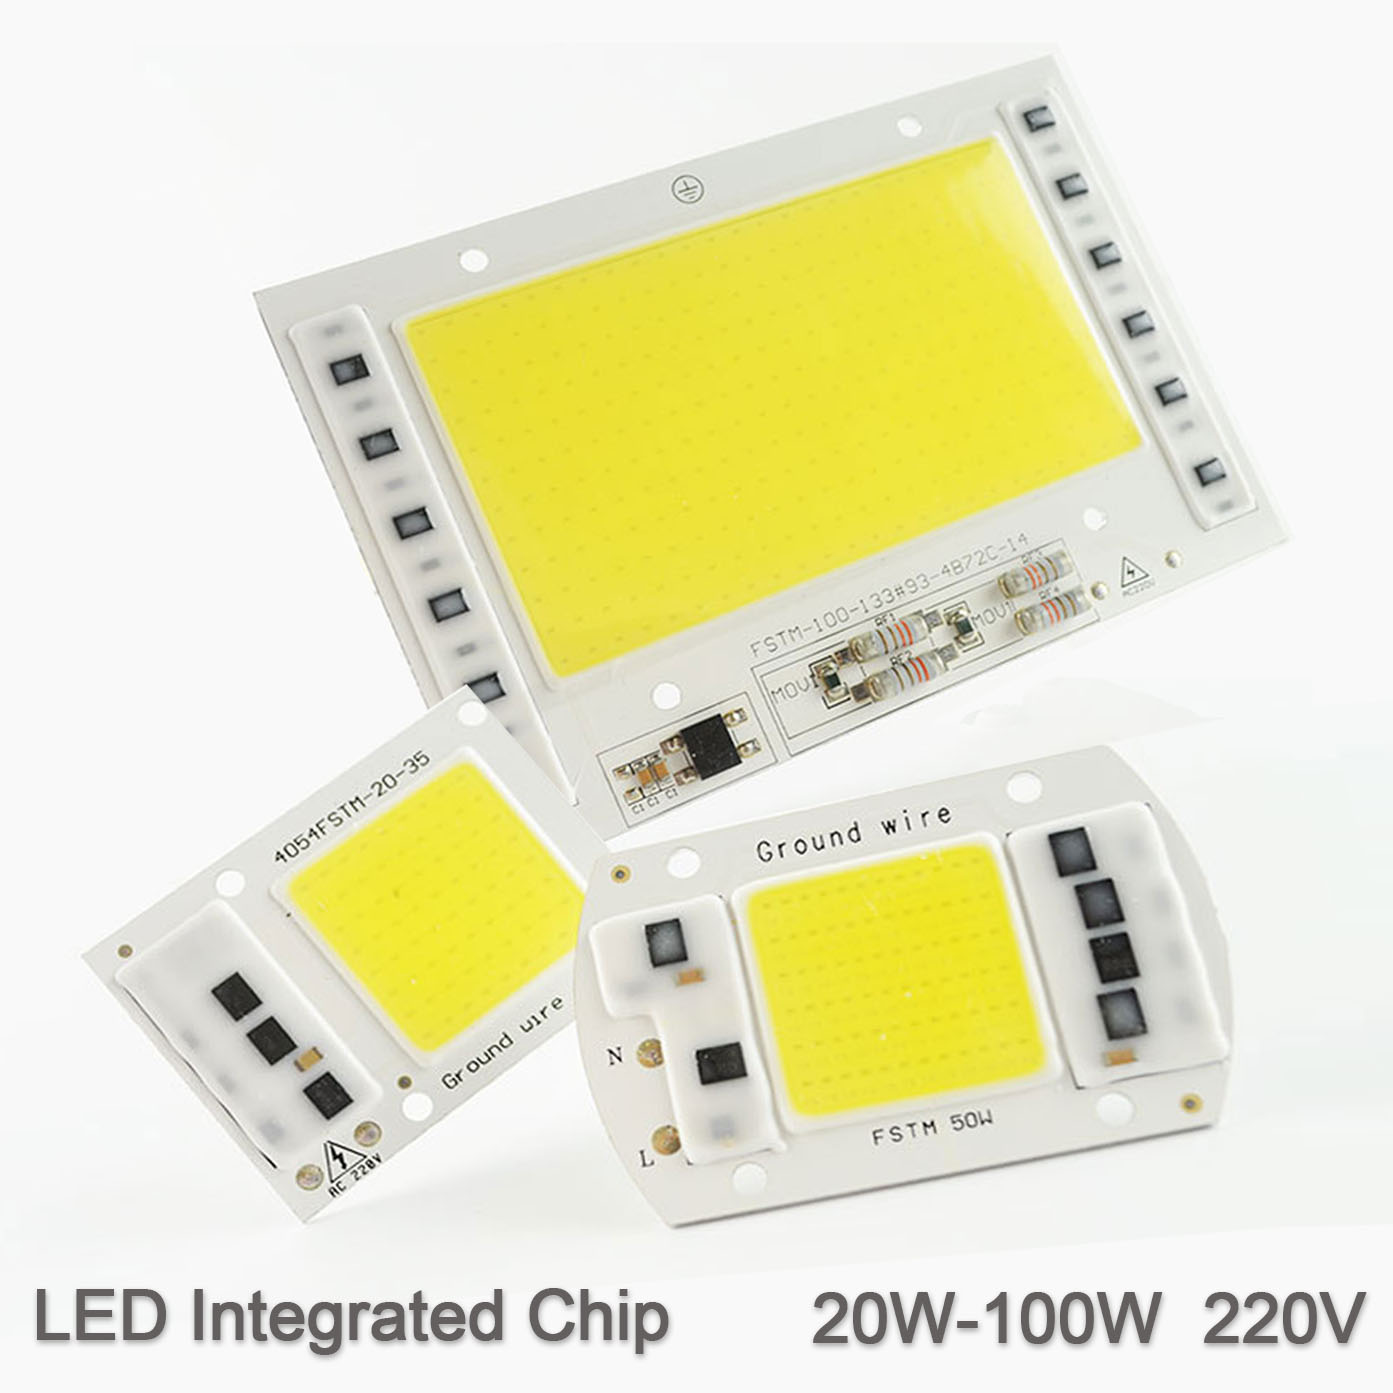 LED Lamp Chip Integrated COB 5W 20W 30W 50W 100W 220V 240V Smart IC Driver Cold Warm White LED Spotlight Floodlight Growth Grow